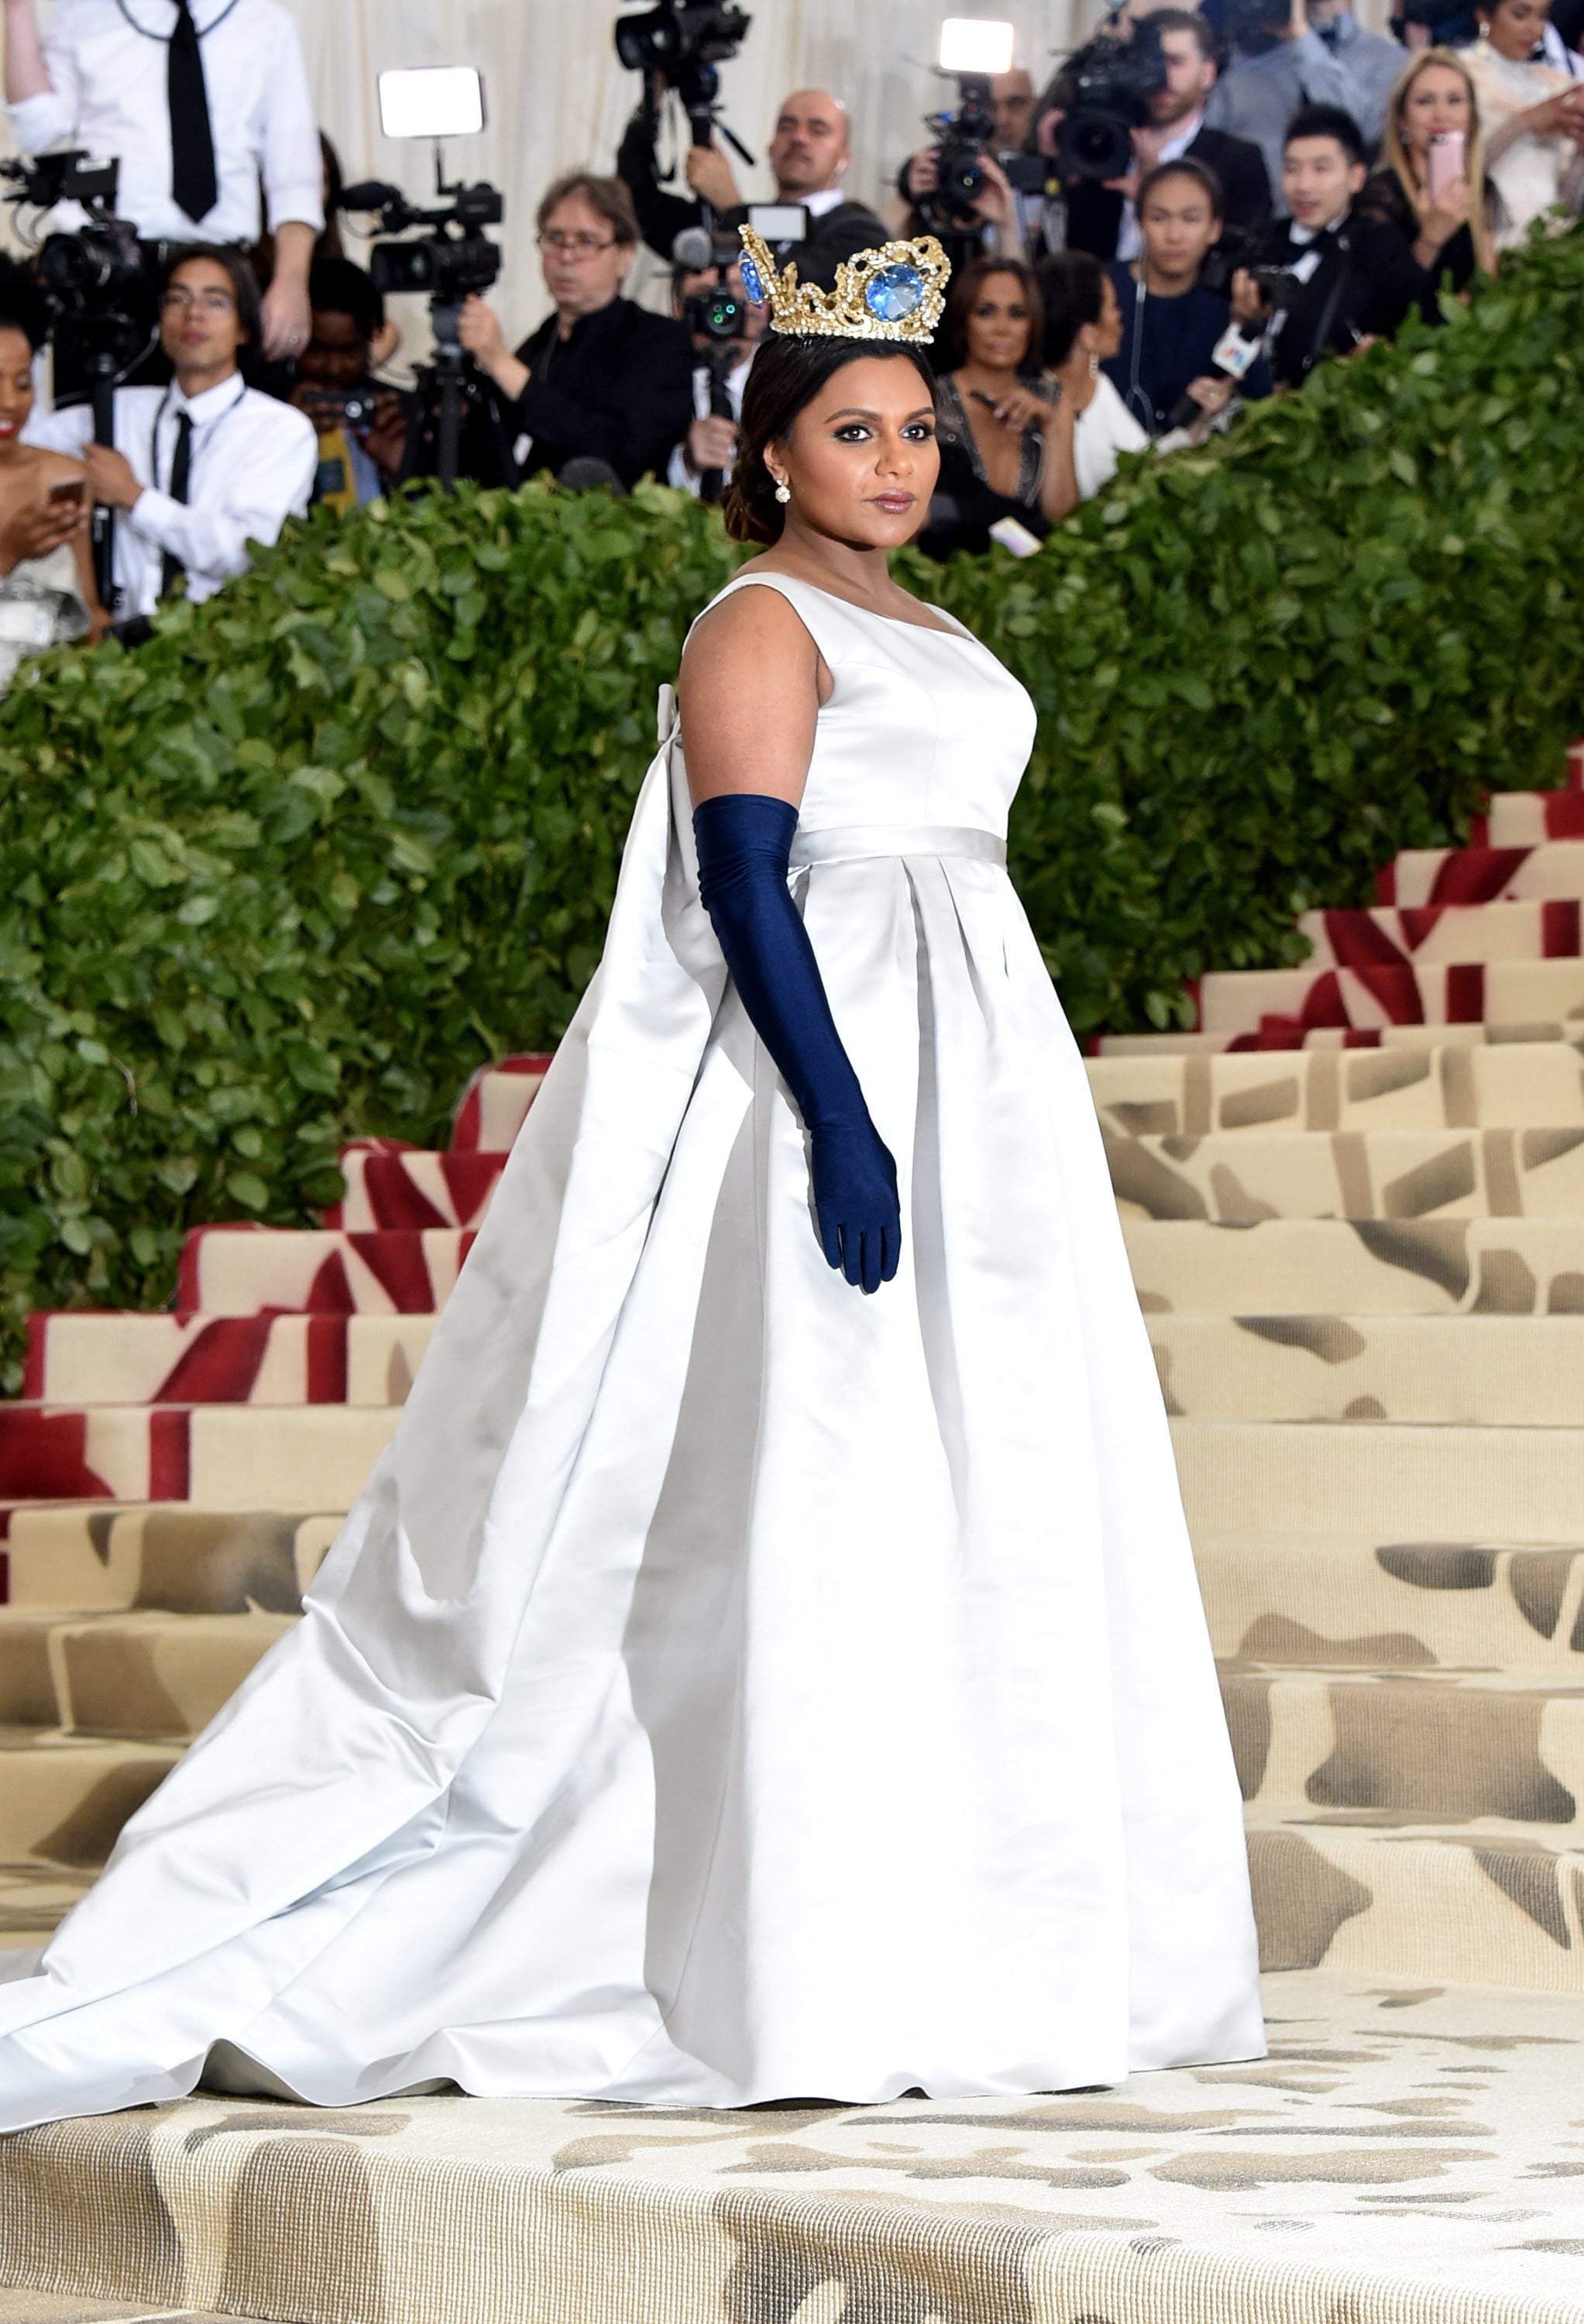 Mindy Kaling At The 2018 Met Gala Popsugar Celebrity